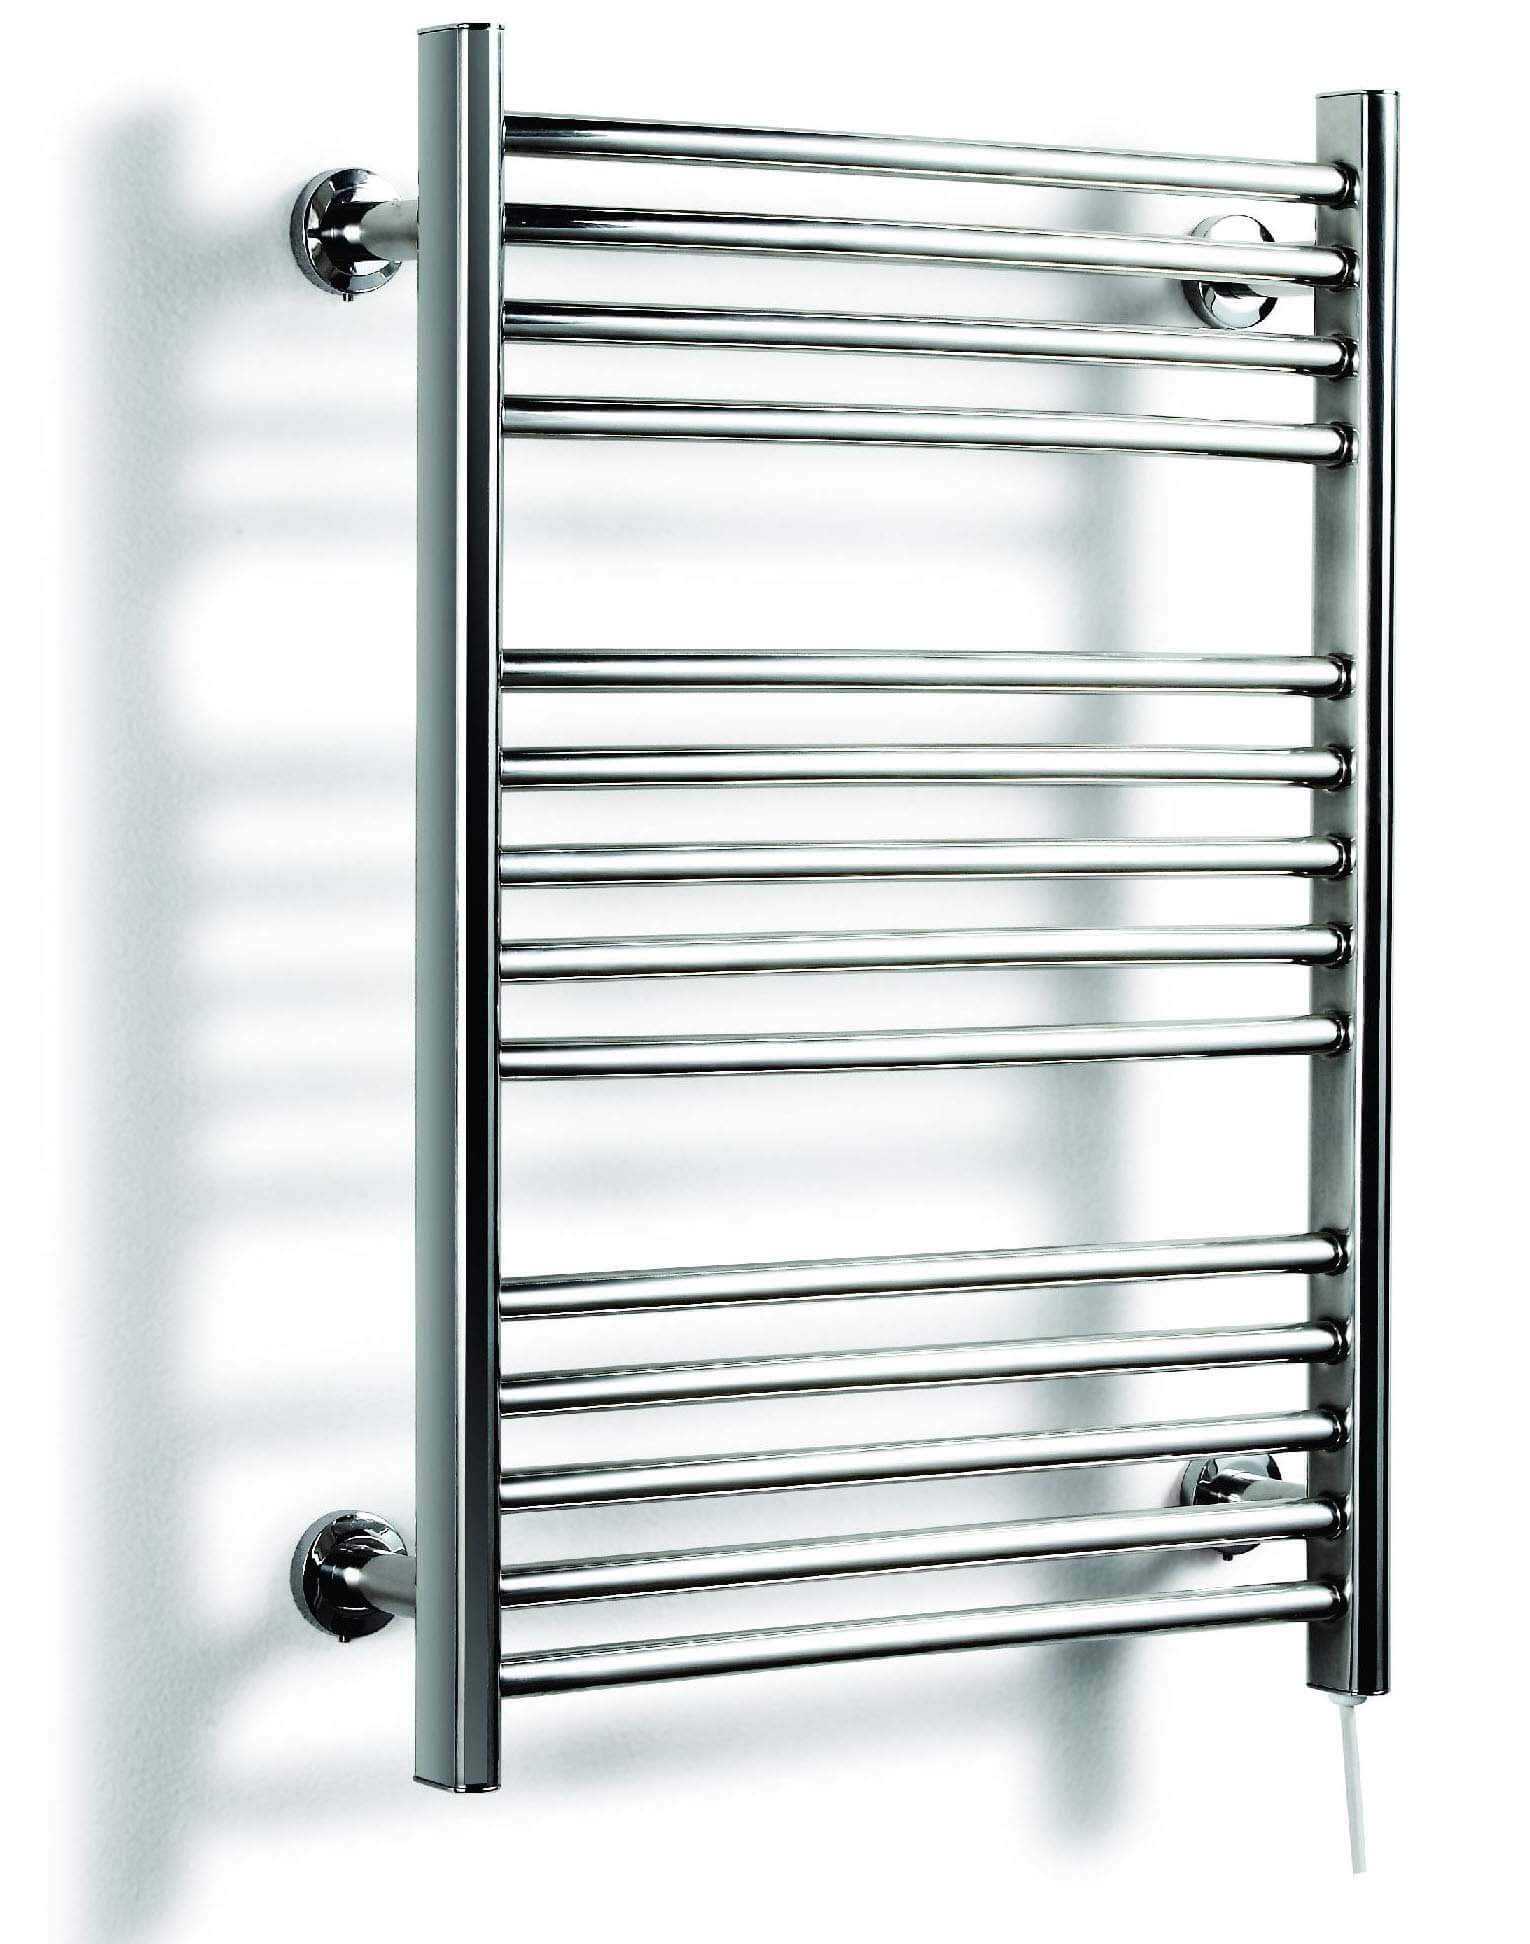 installing electric towel warmers